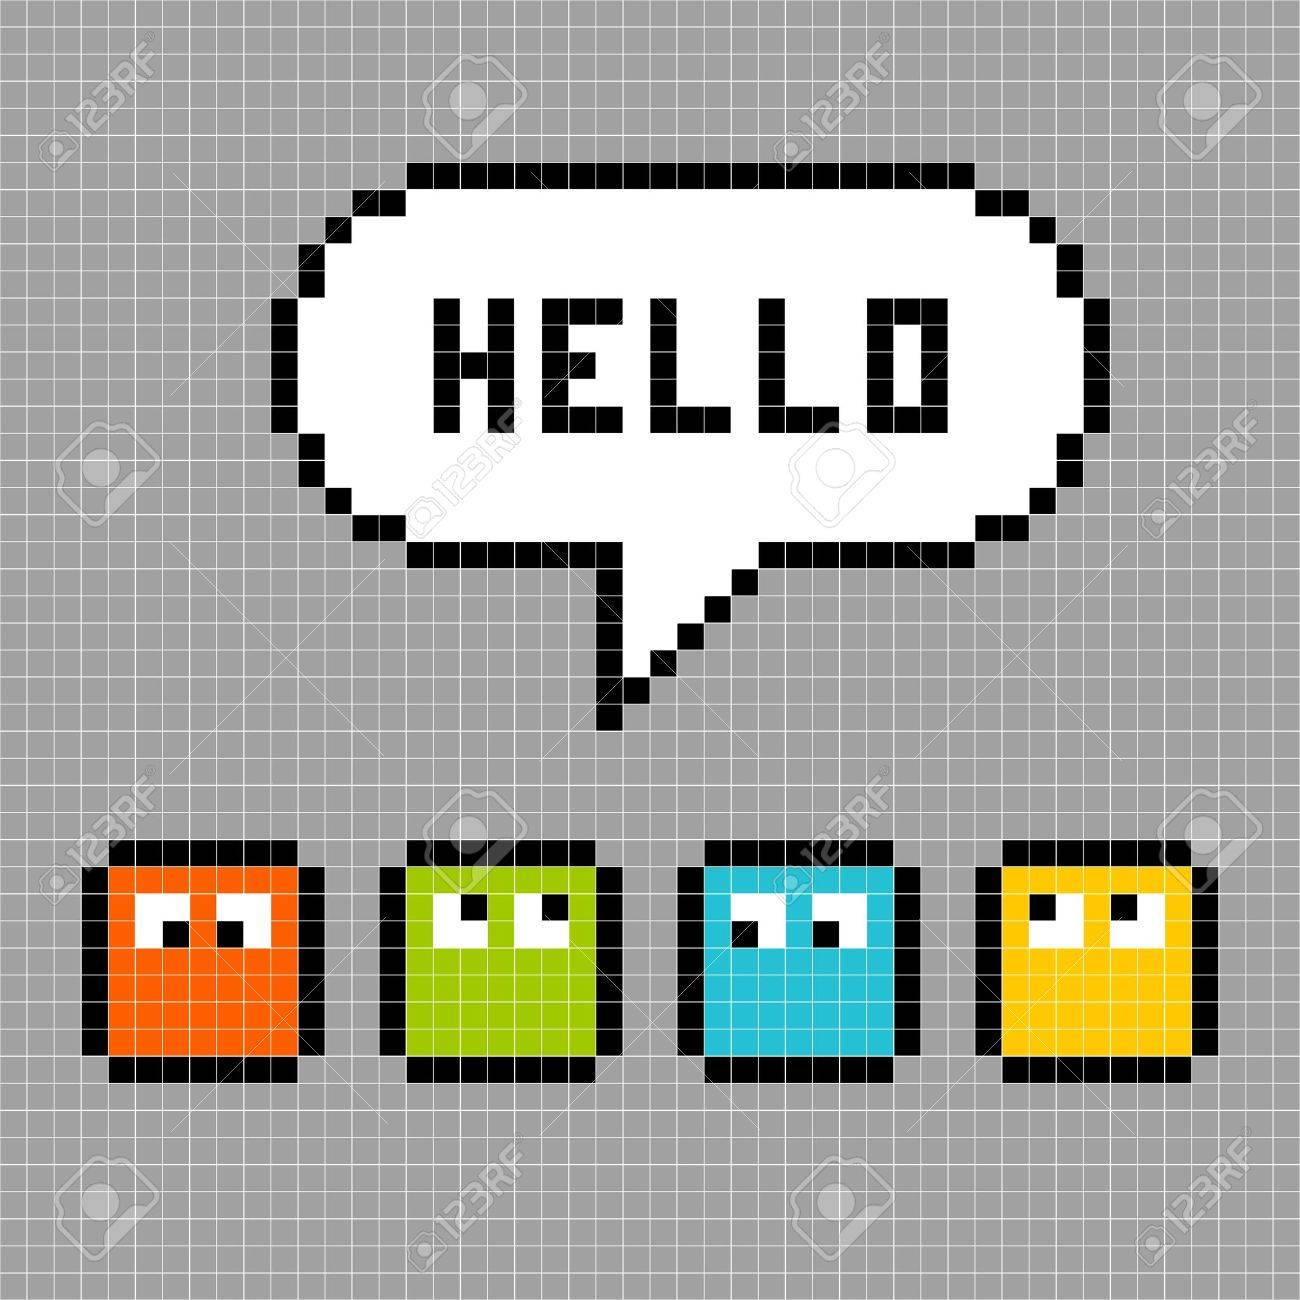 8-bit pixel characters say hello against a grey grid background Stock Vector - 19090065